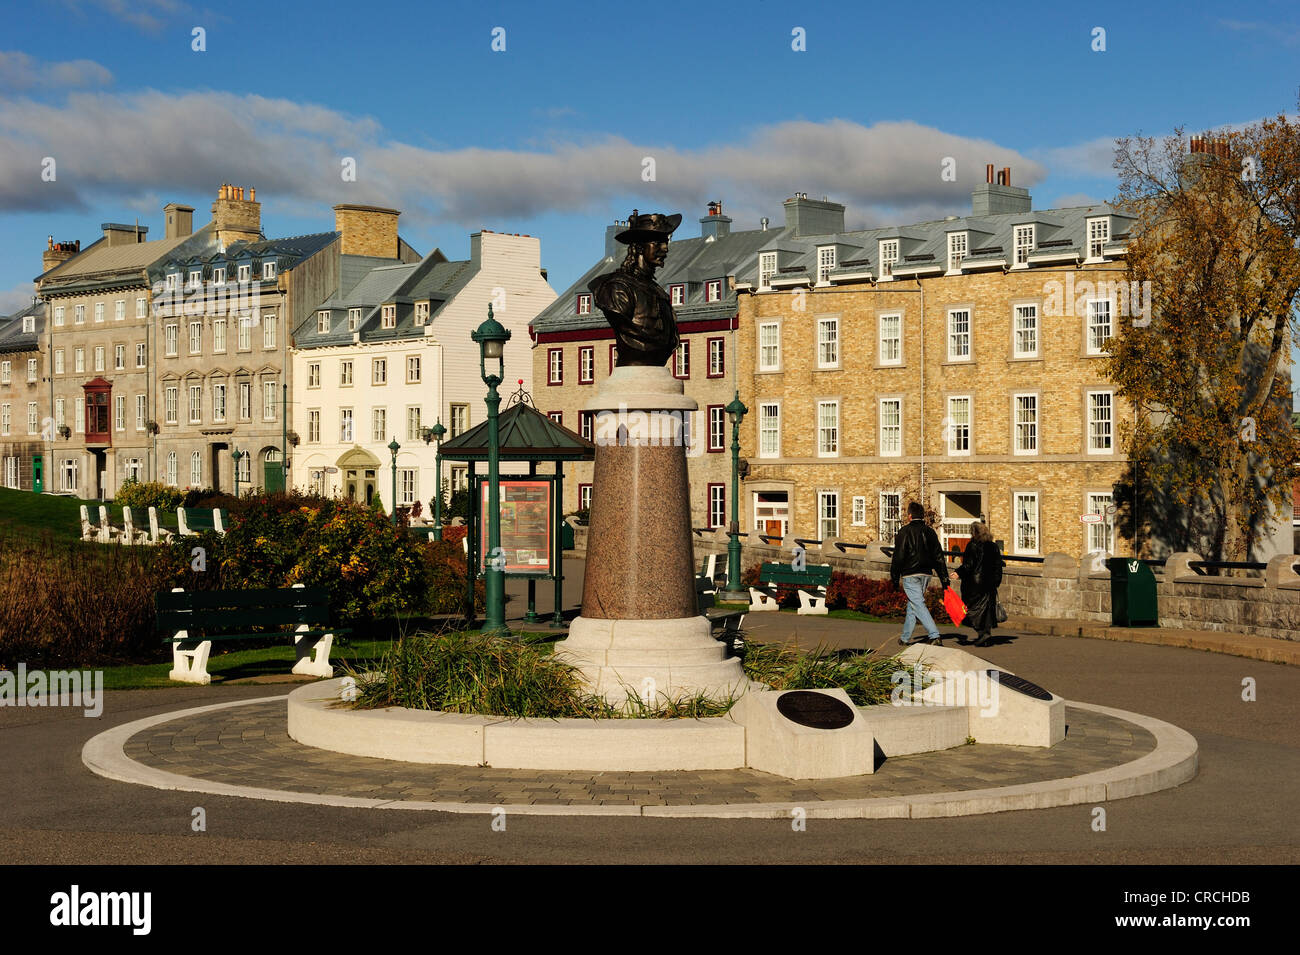 Statue of Pierre Dugua de Mons against the backdrop of the historic town centre of Quebec City, Quebec, Canada - Stock Image